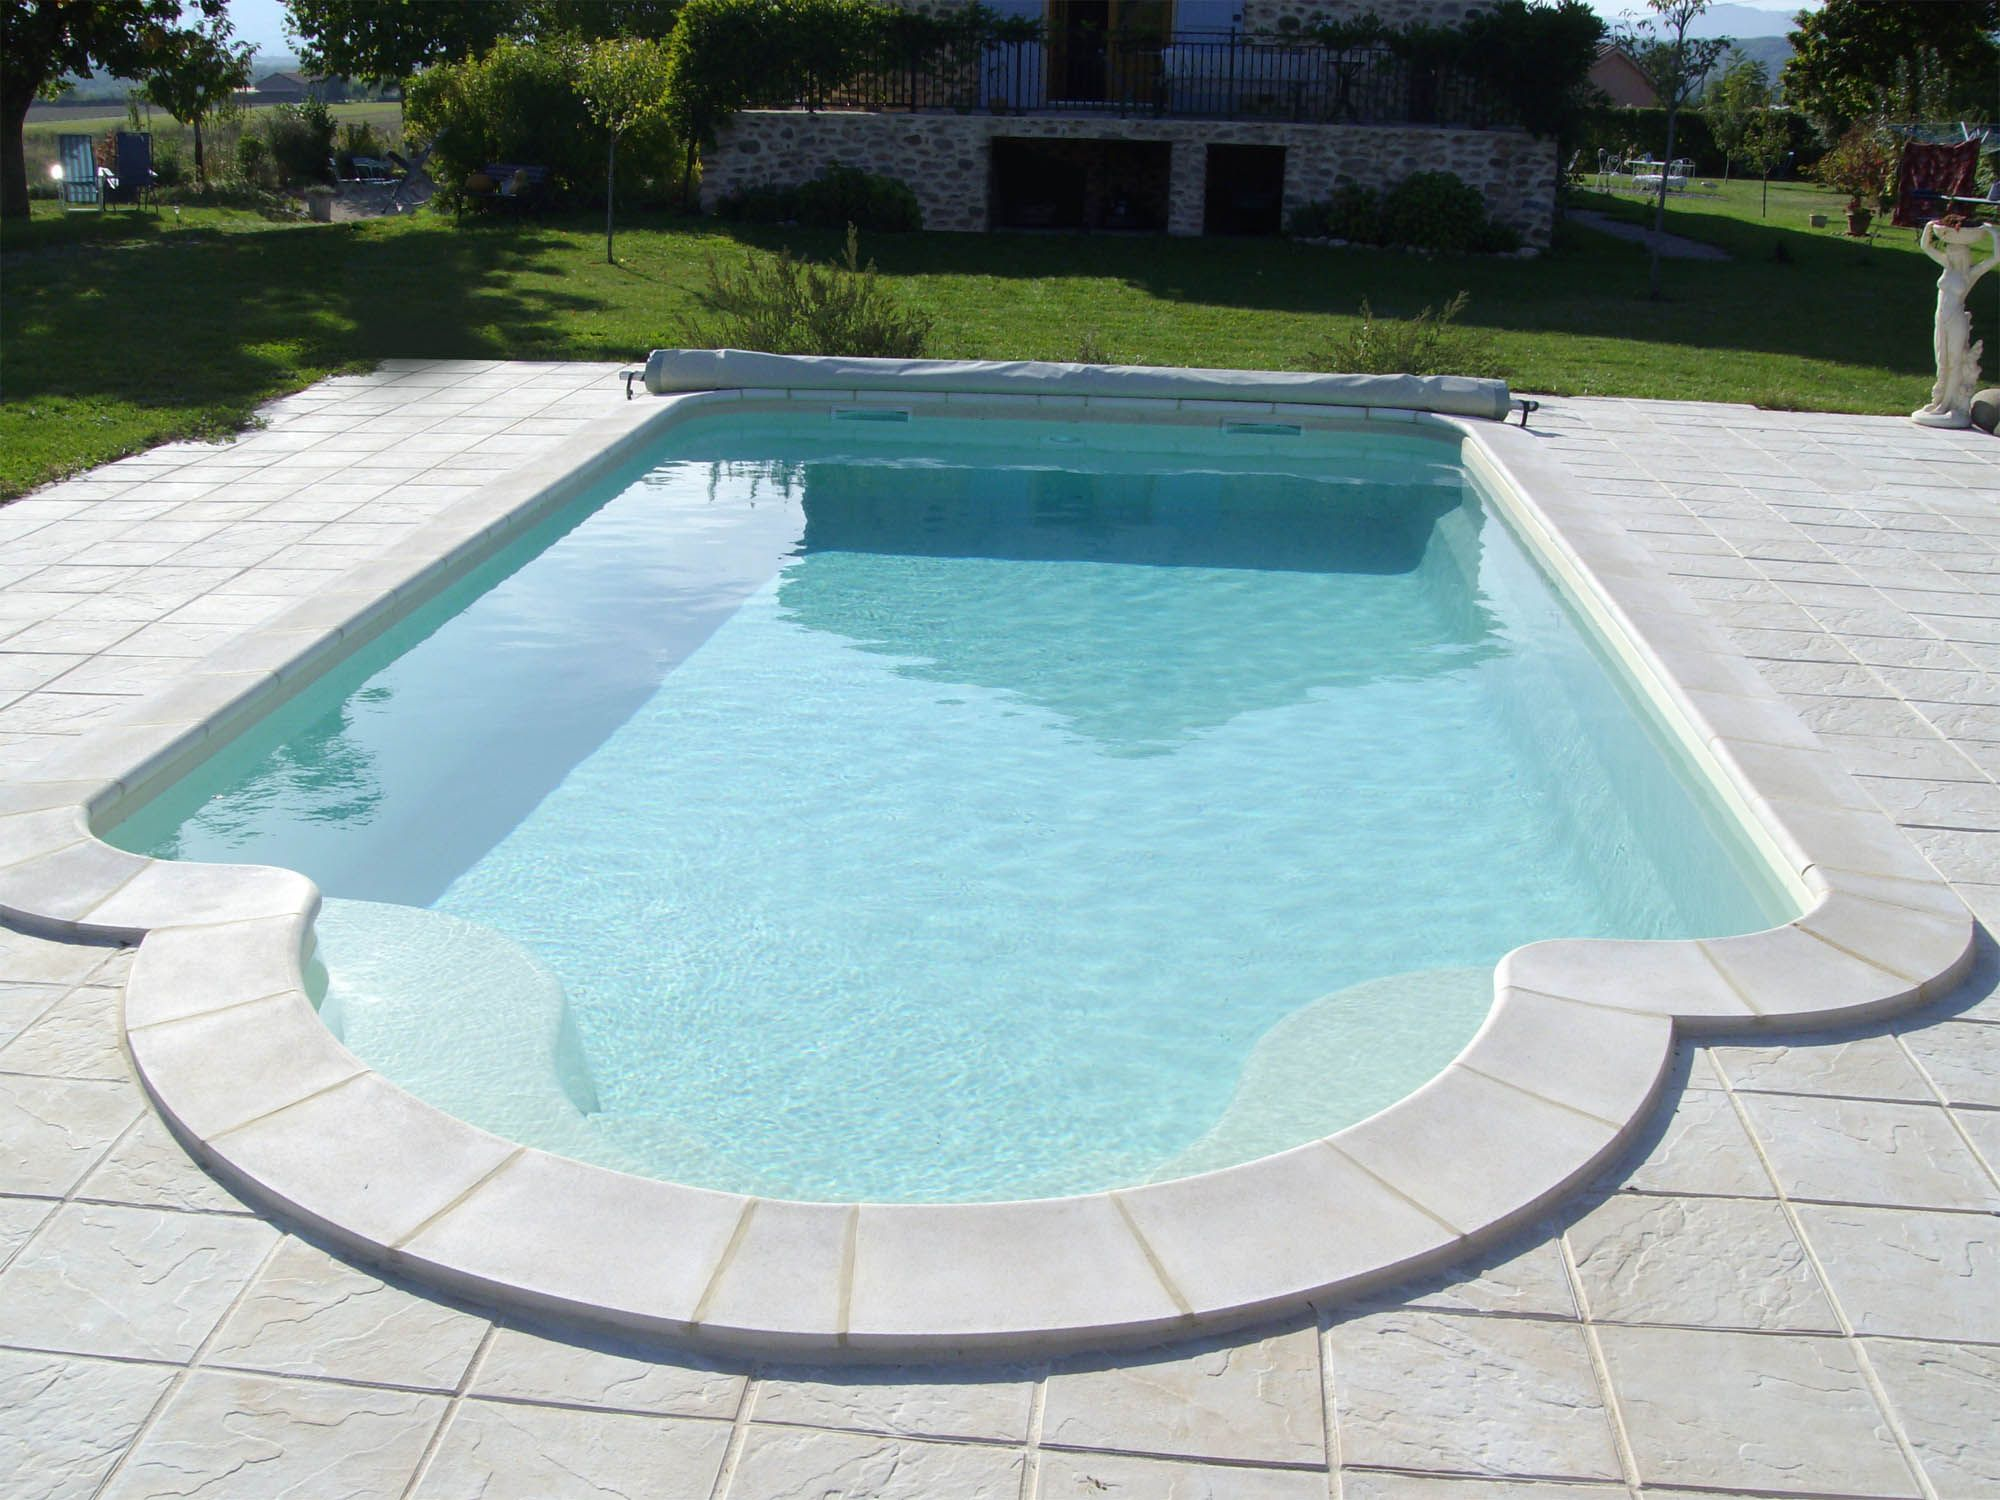 Piscine coque polyester variation fabrication fran aise for Liner couleur sable piscine